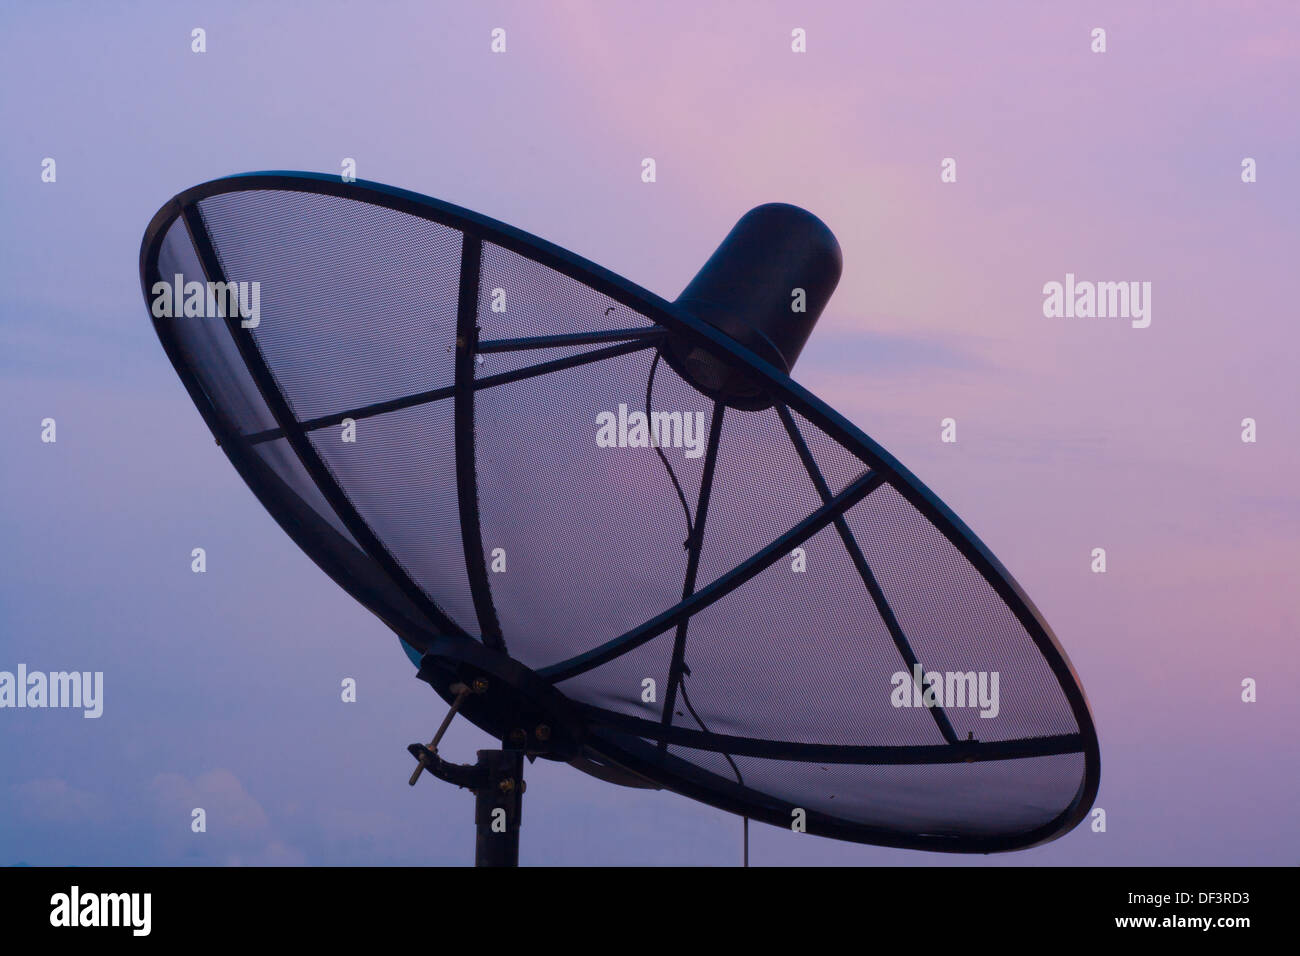 alone wireless wire wave urban tv transmiter television telecommunication technology station space solitude sky single simplicit - Stock Image